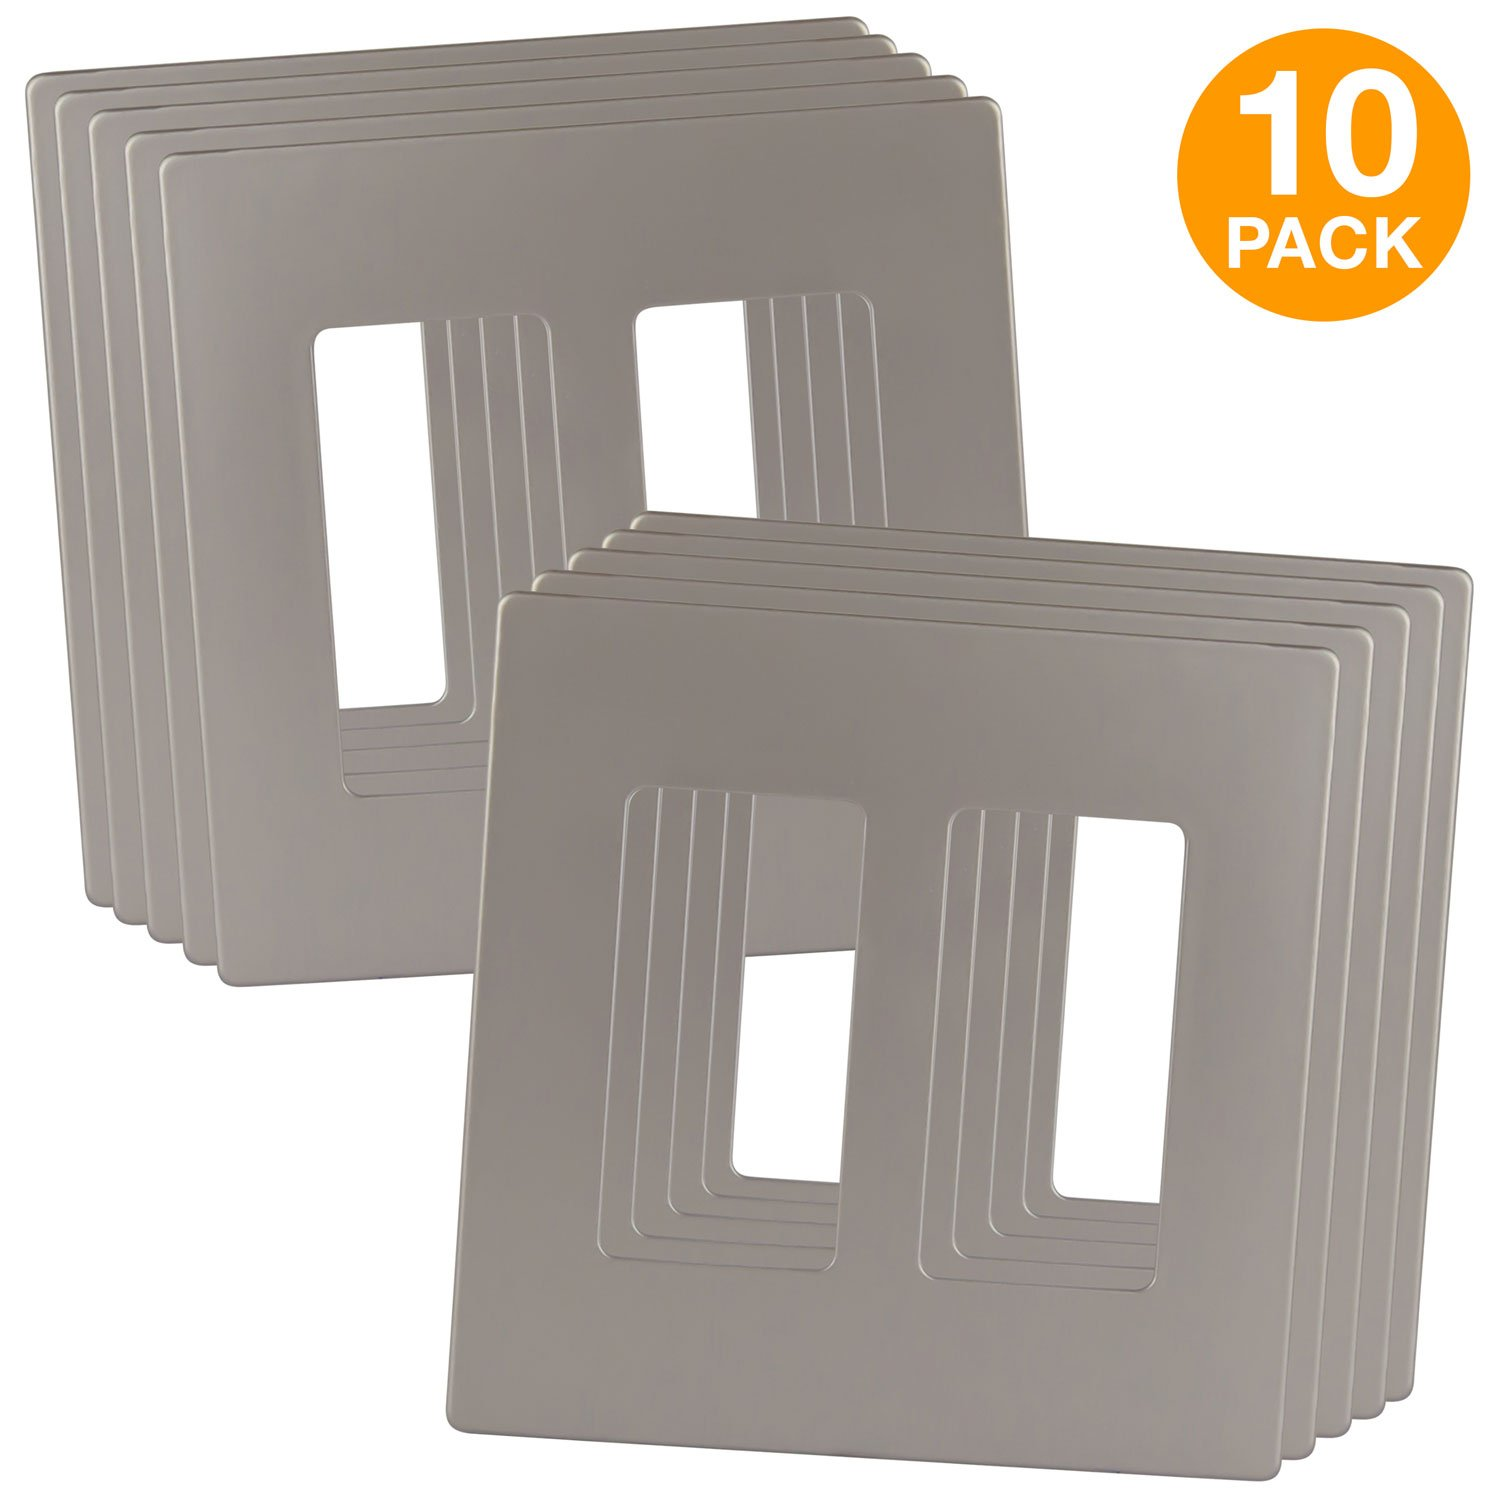 ENERLITES Elite Series Screwless Decorator Wall Plates Child Safe Outlet Covers, Size 2-Gang 4.68'' H x 4.73'' L, Unbreakable Polycarbonate Thermoplastic, SI8832-NK-10PCS, Nickel (10 Pack)